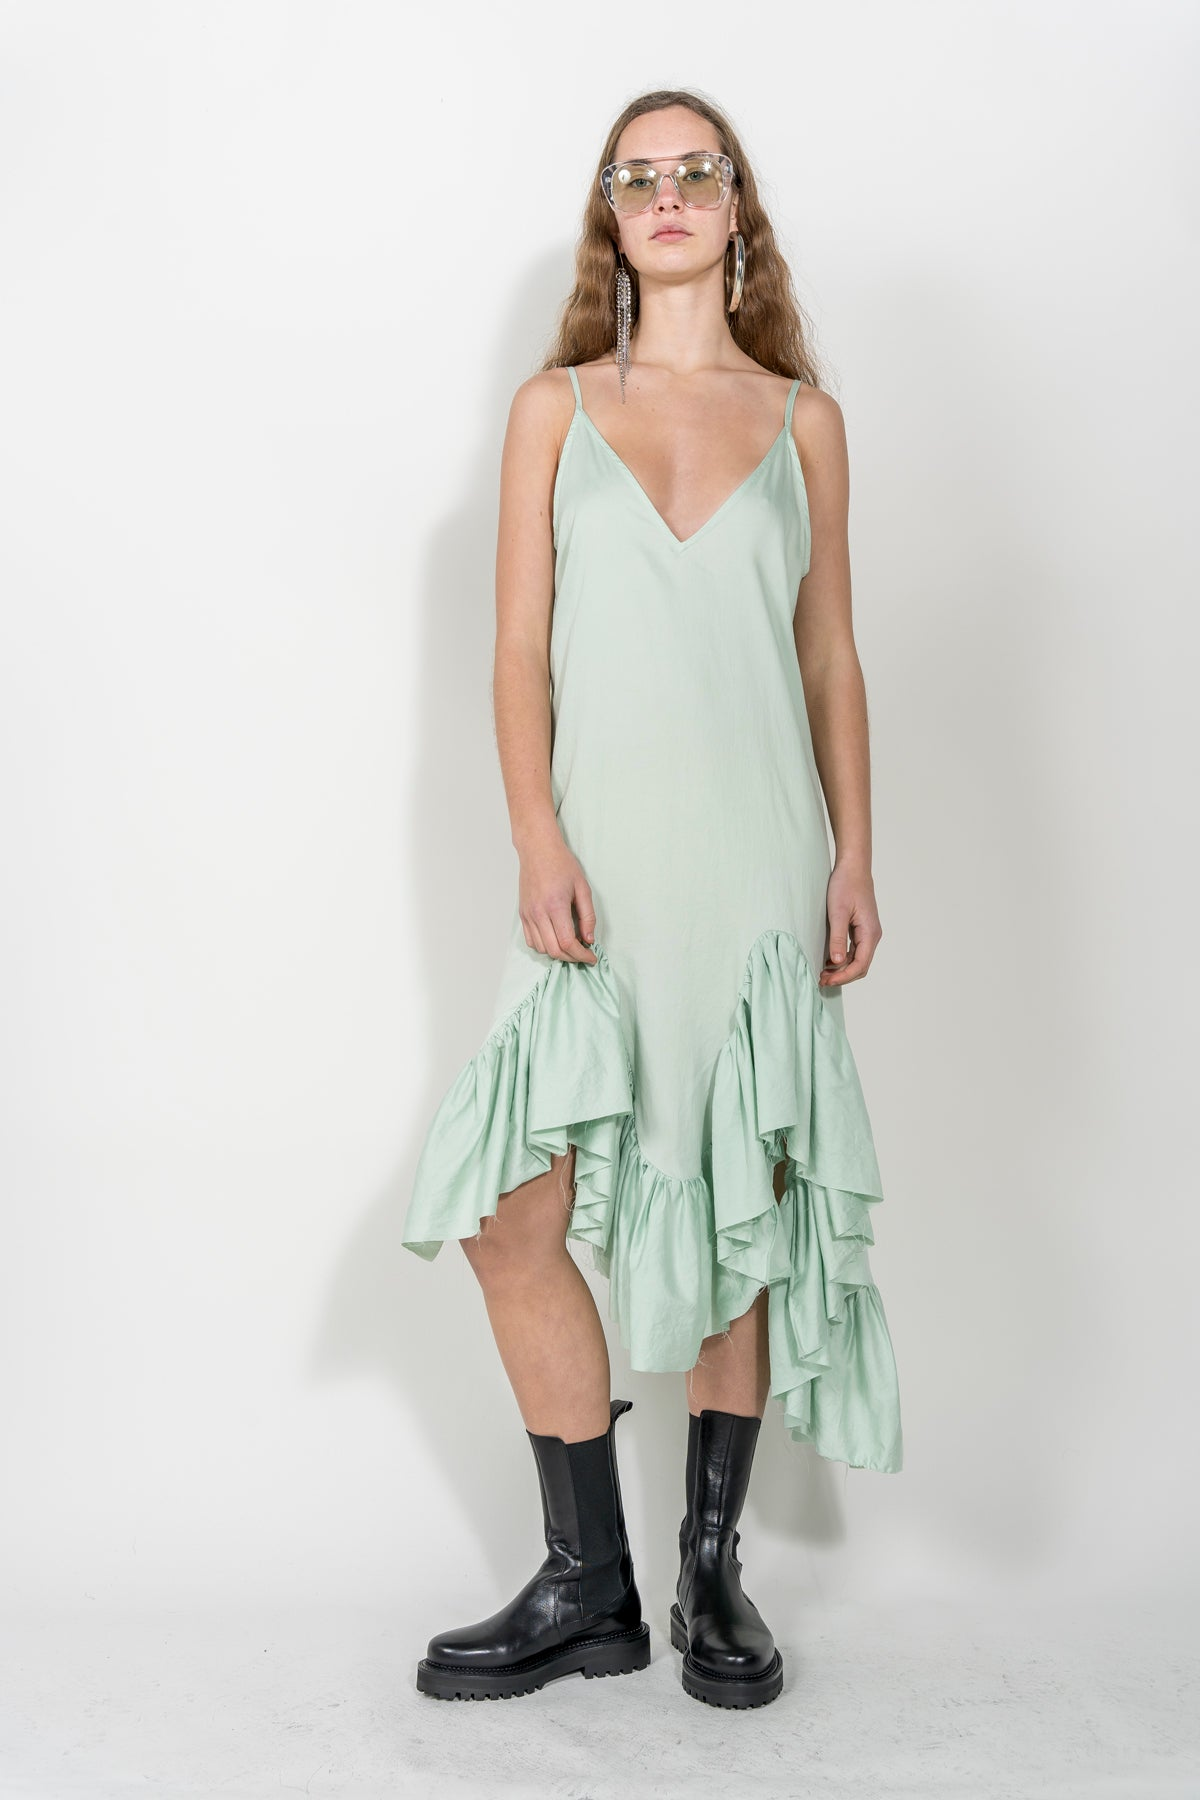 STRAP FLOUNCE DRESS IN LIGHT GREEN marques-almeida